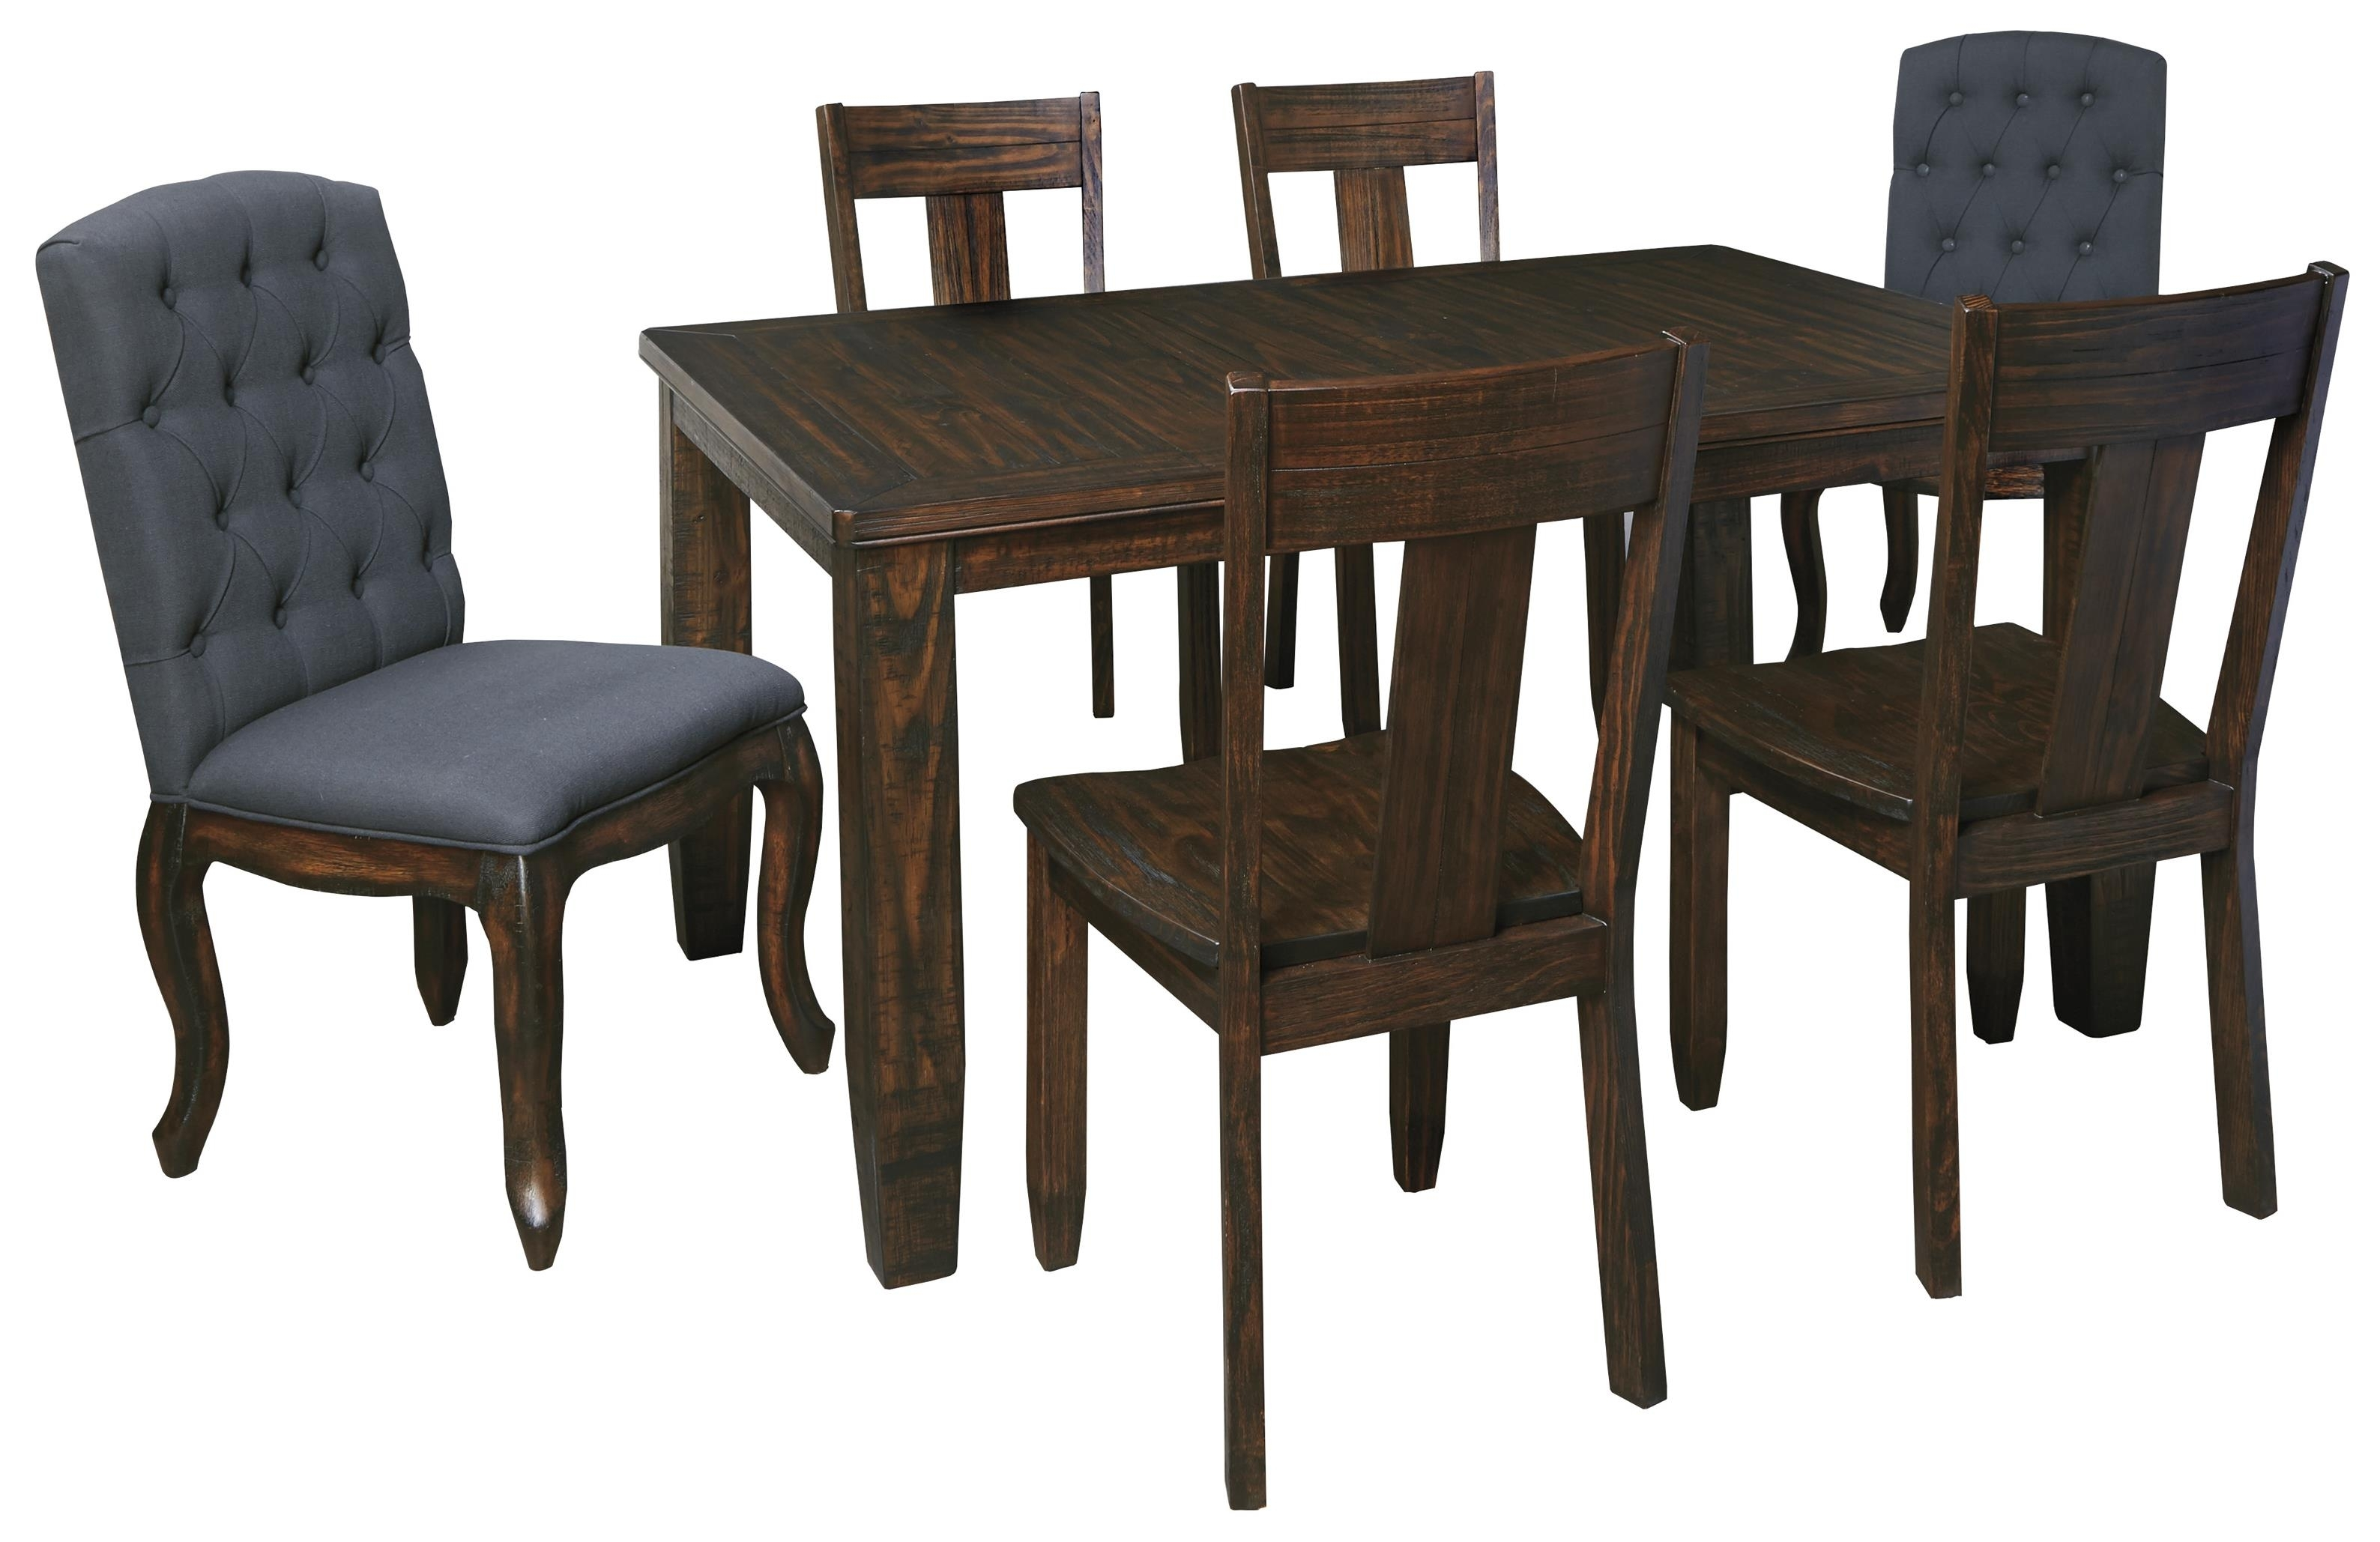 Set 10 Victorian Upholstered Dining Chairs Seats Patterned Dining Pertaining To Most Recent Jaxon 7 Piece Rectangle Dining Sets With Upholstered Chairs (Image 14 of 20)